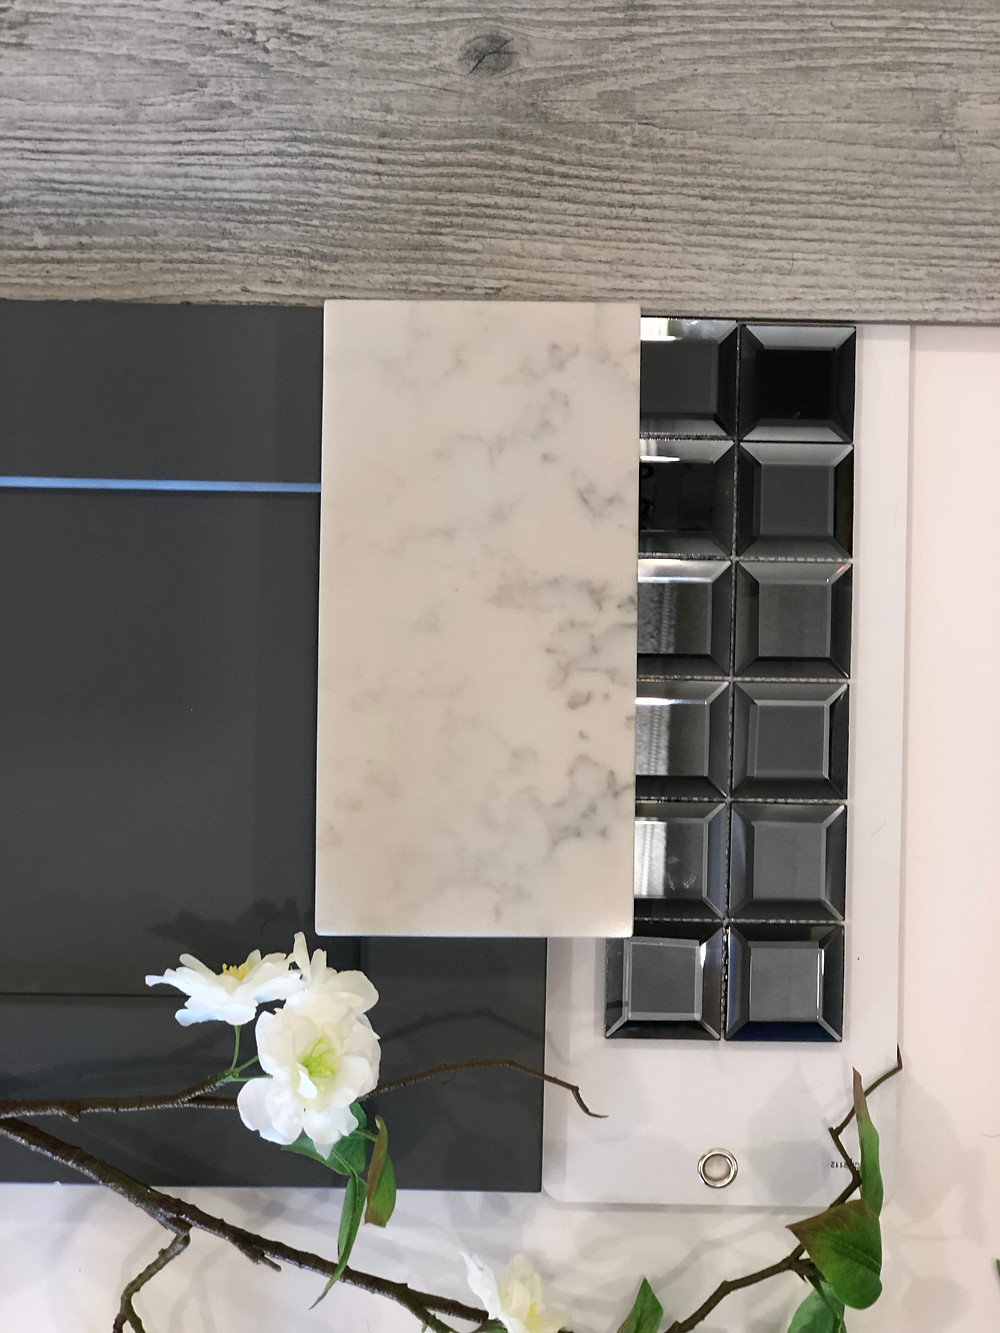 If you looking for grey color to define your kitchen, here is a good option to be installed with Carrara Grigio Quartz Countertops, Porcelain earth grey tile floor, back splash tile Hematite Squares, shaker grey kitchen cabinets.